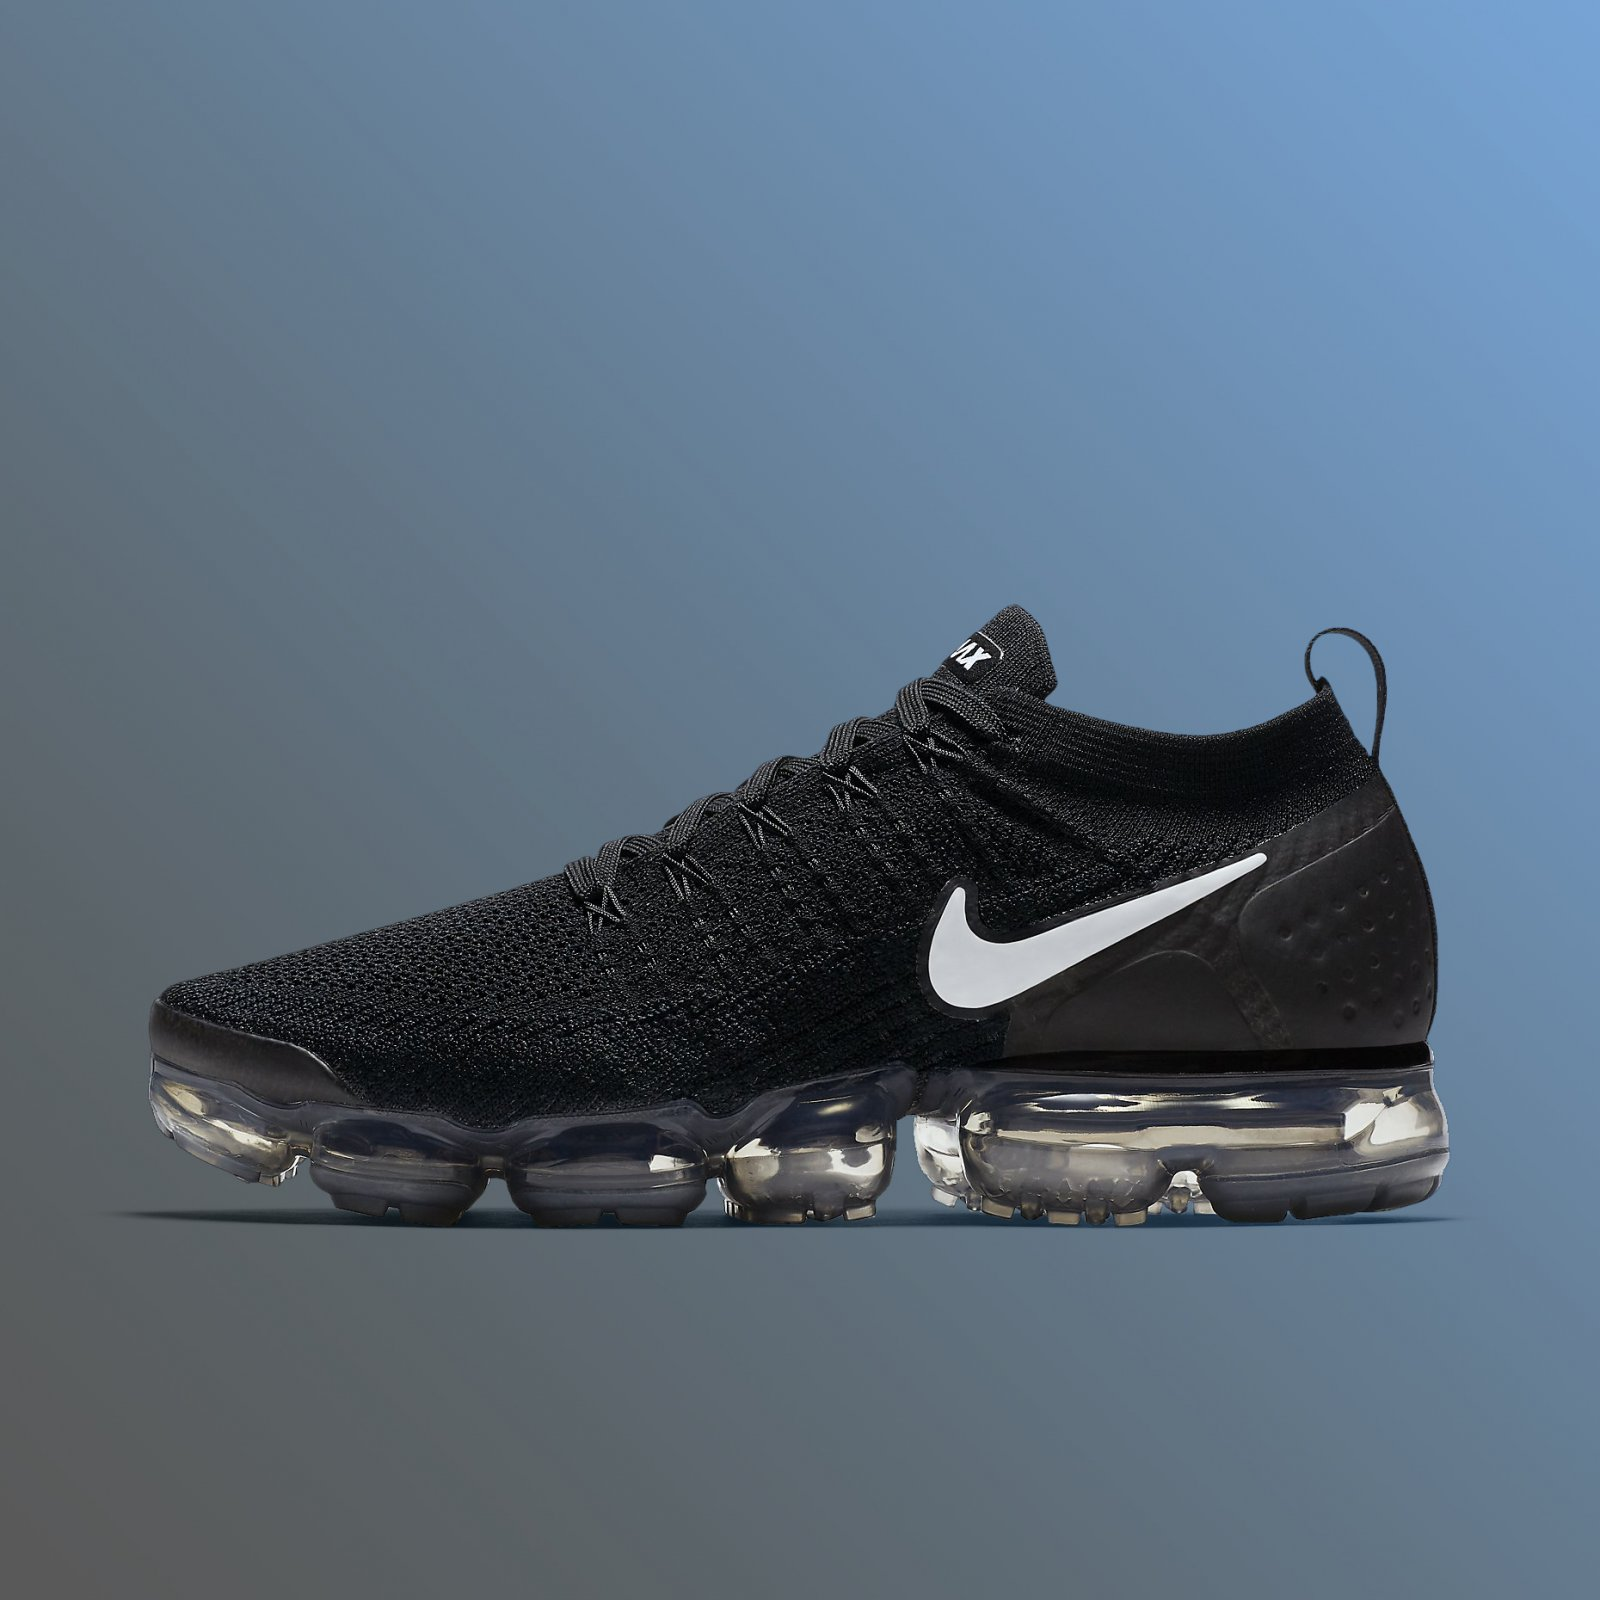 cheap for discount a277f 9efcd Details about Nike Air Vapormax Flyknit 2.0 Black White Grey Men s Running Shoes  942842-001